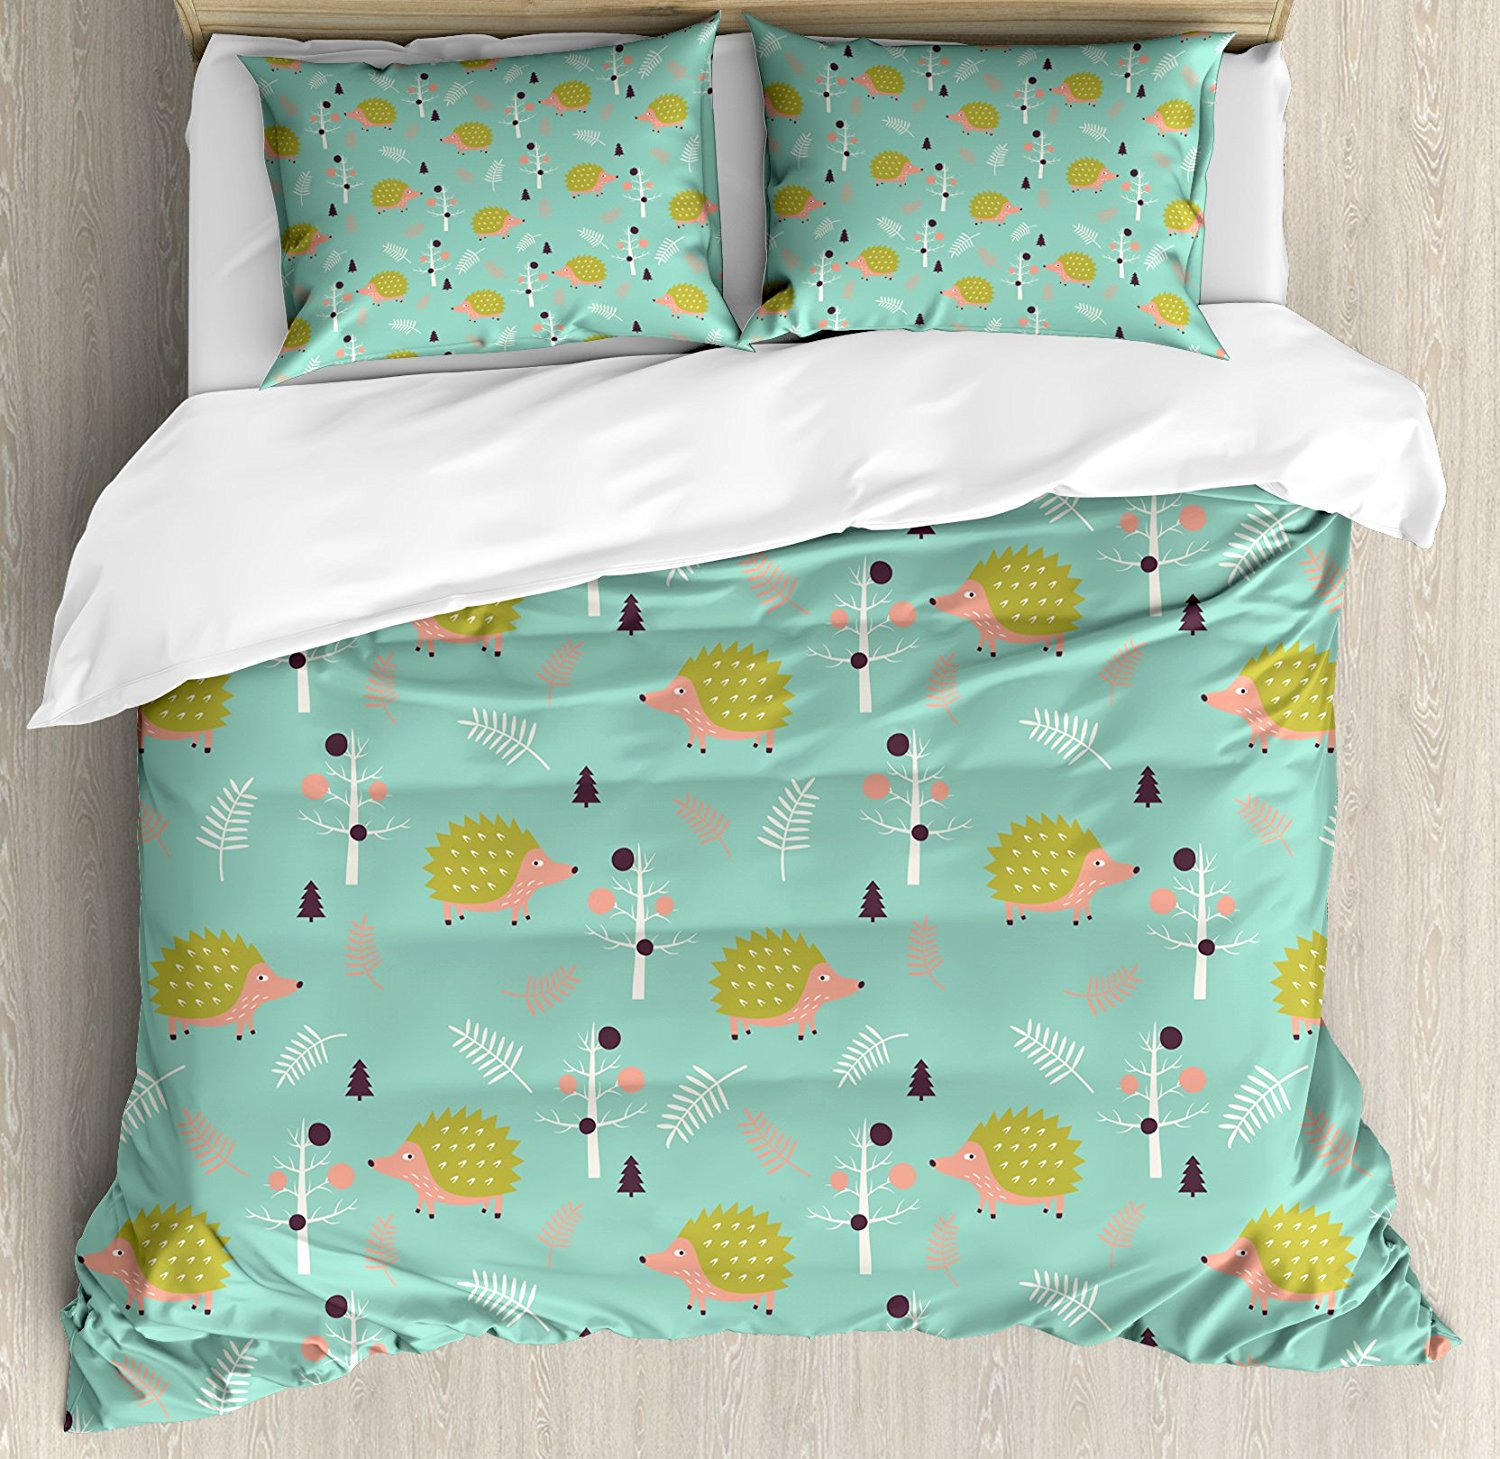 Duvet Cover Set, Scandinavian Art Pattern Forest Elements Pine Trees Leafless Branches Countryside, 4 Piece Bedding Set